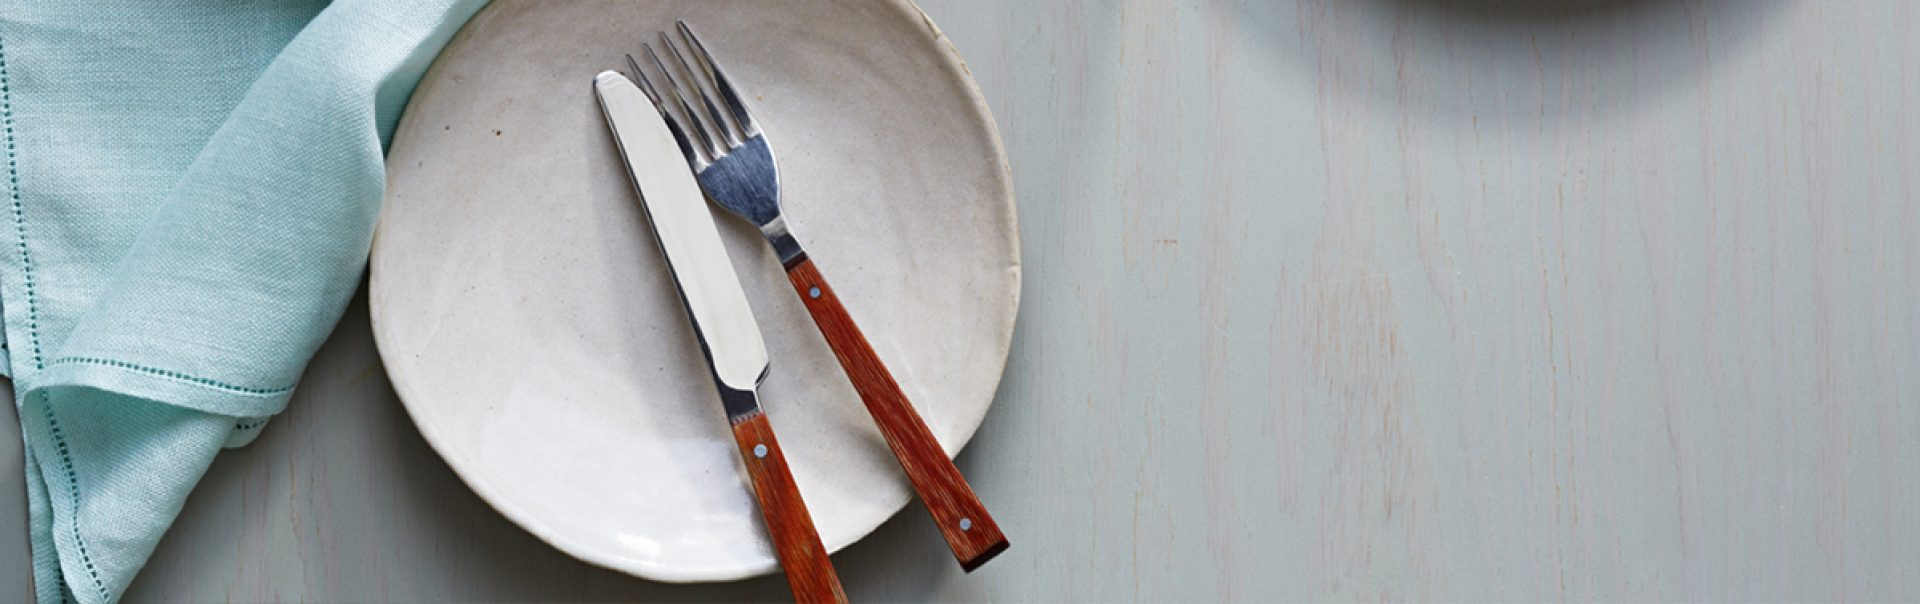 An empty plate with a fork and knife.